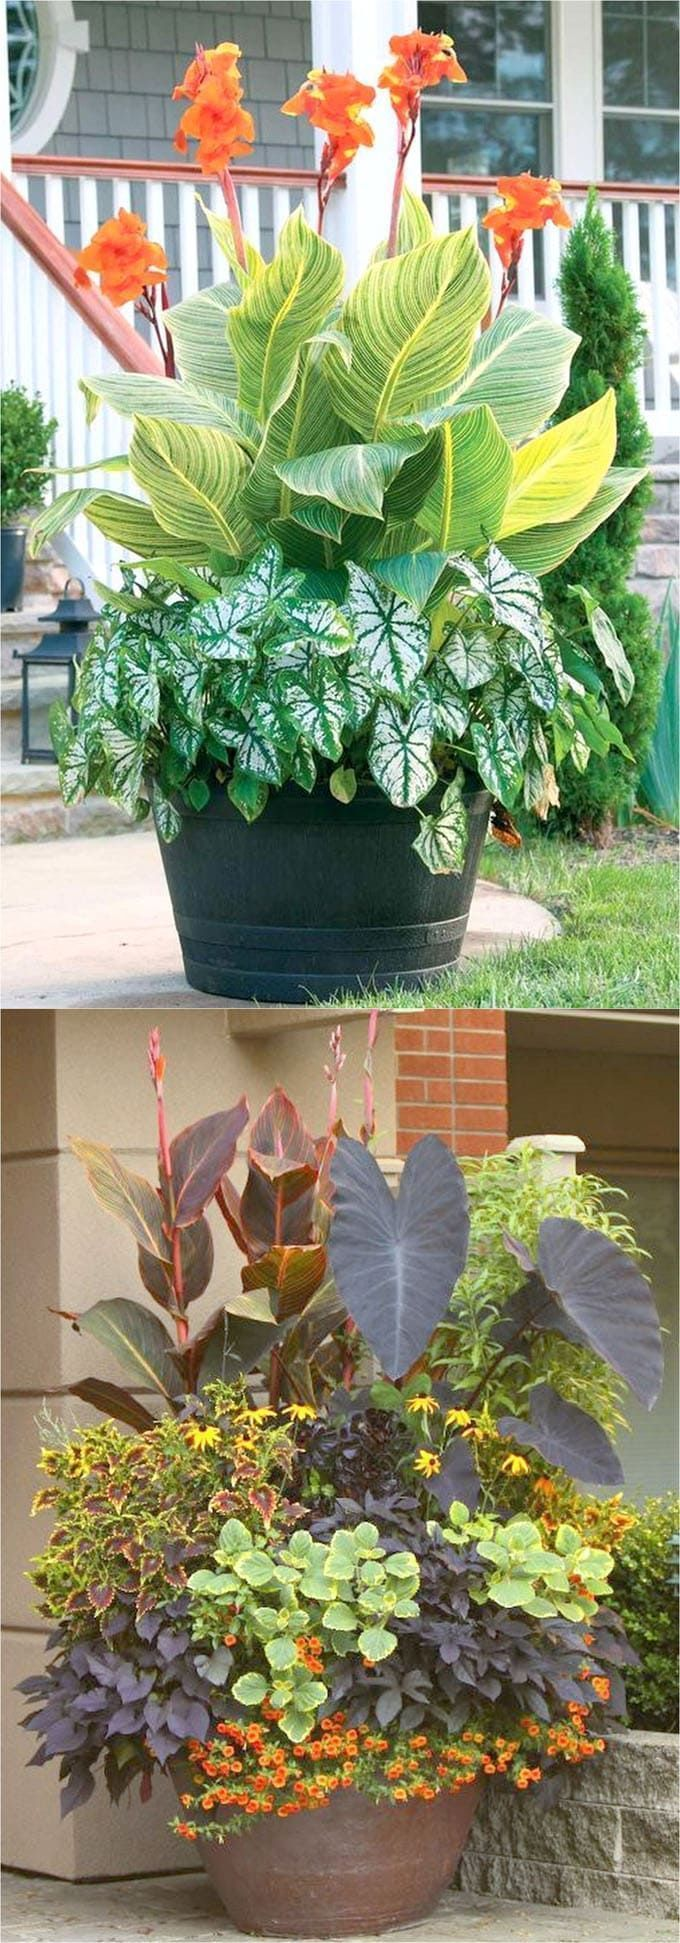 Colorful flower gardening in pots made easy